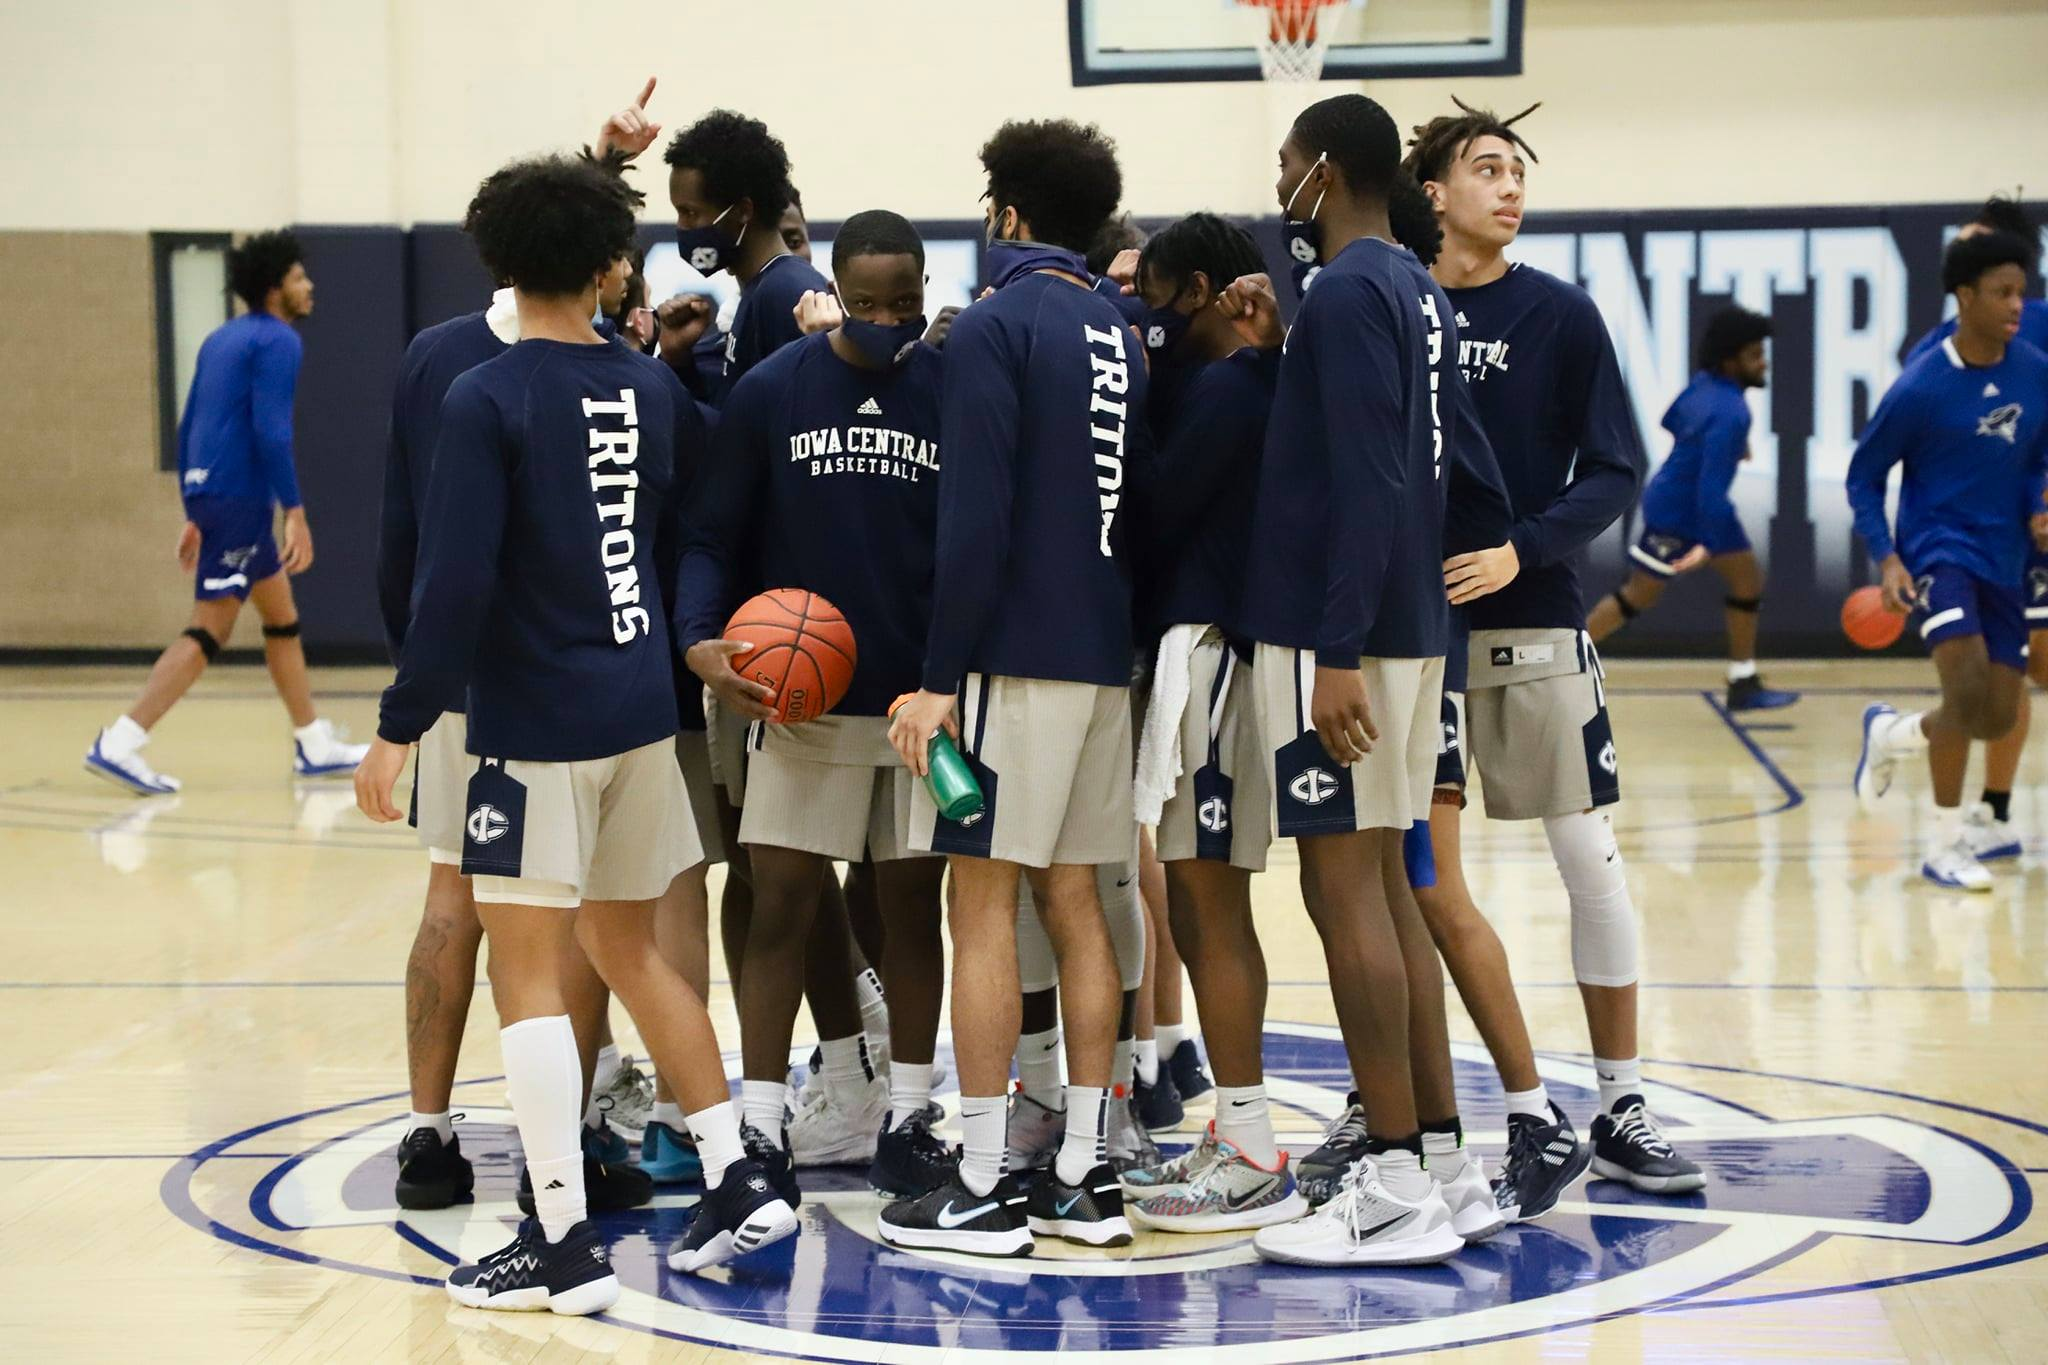 Season comes to an end for Tritons